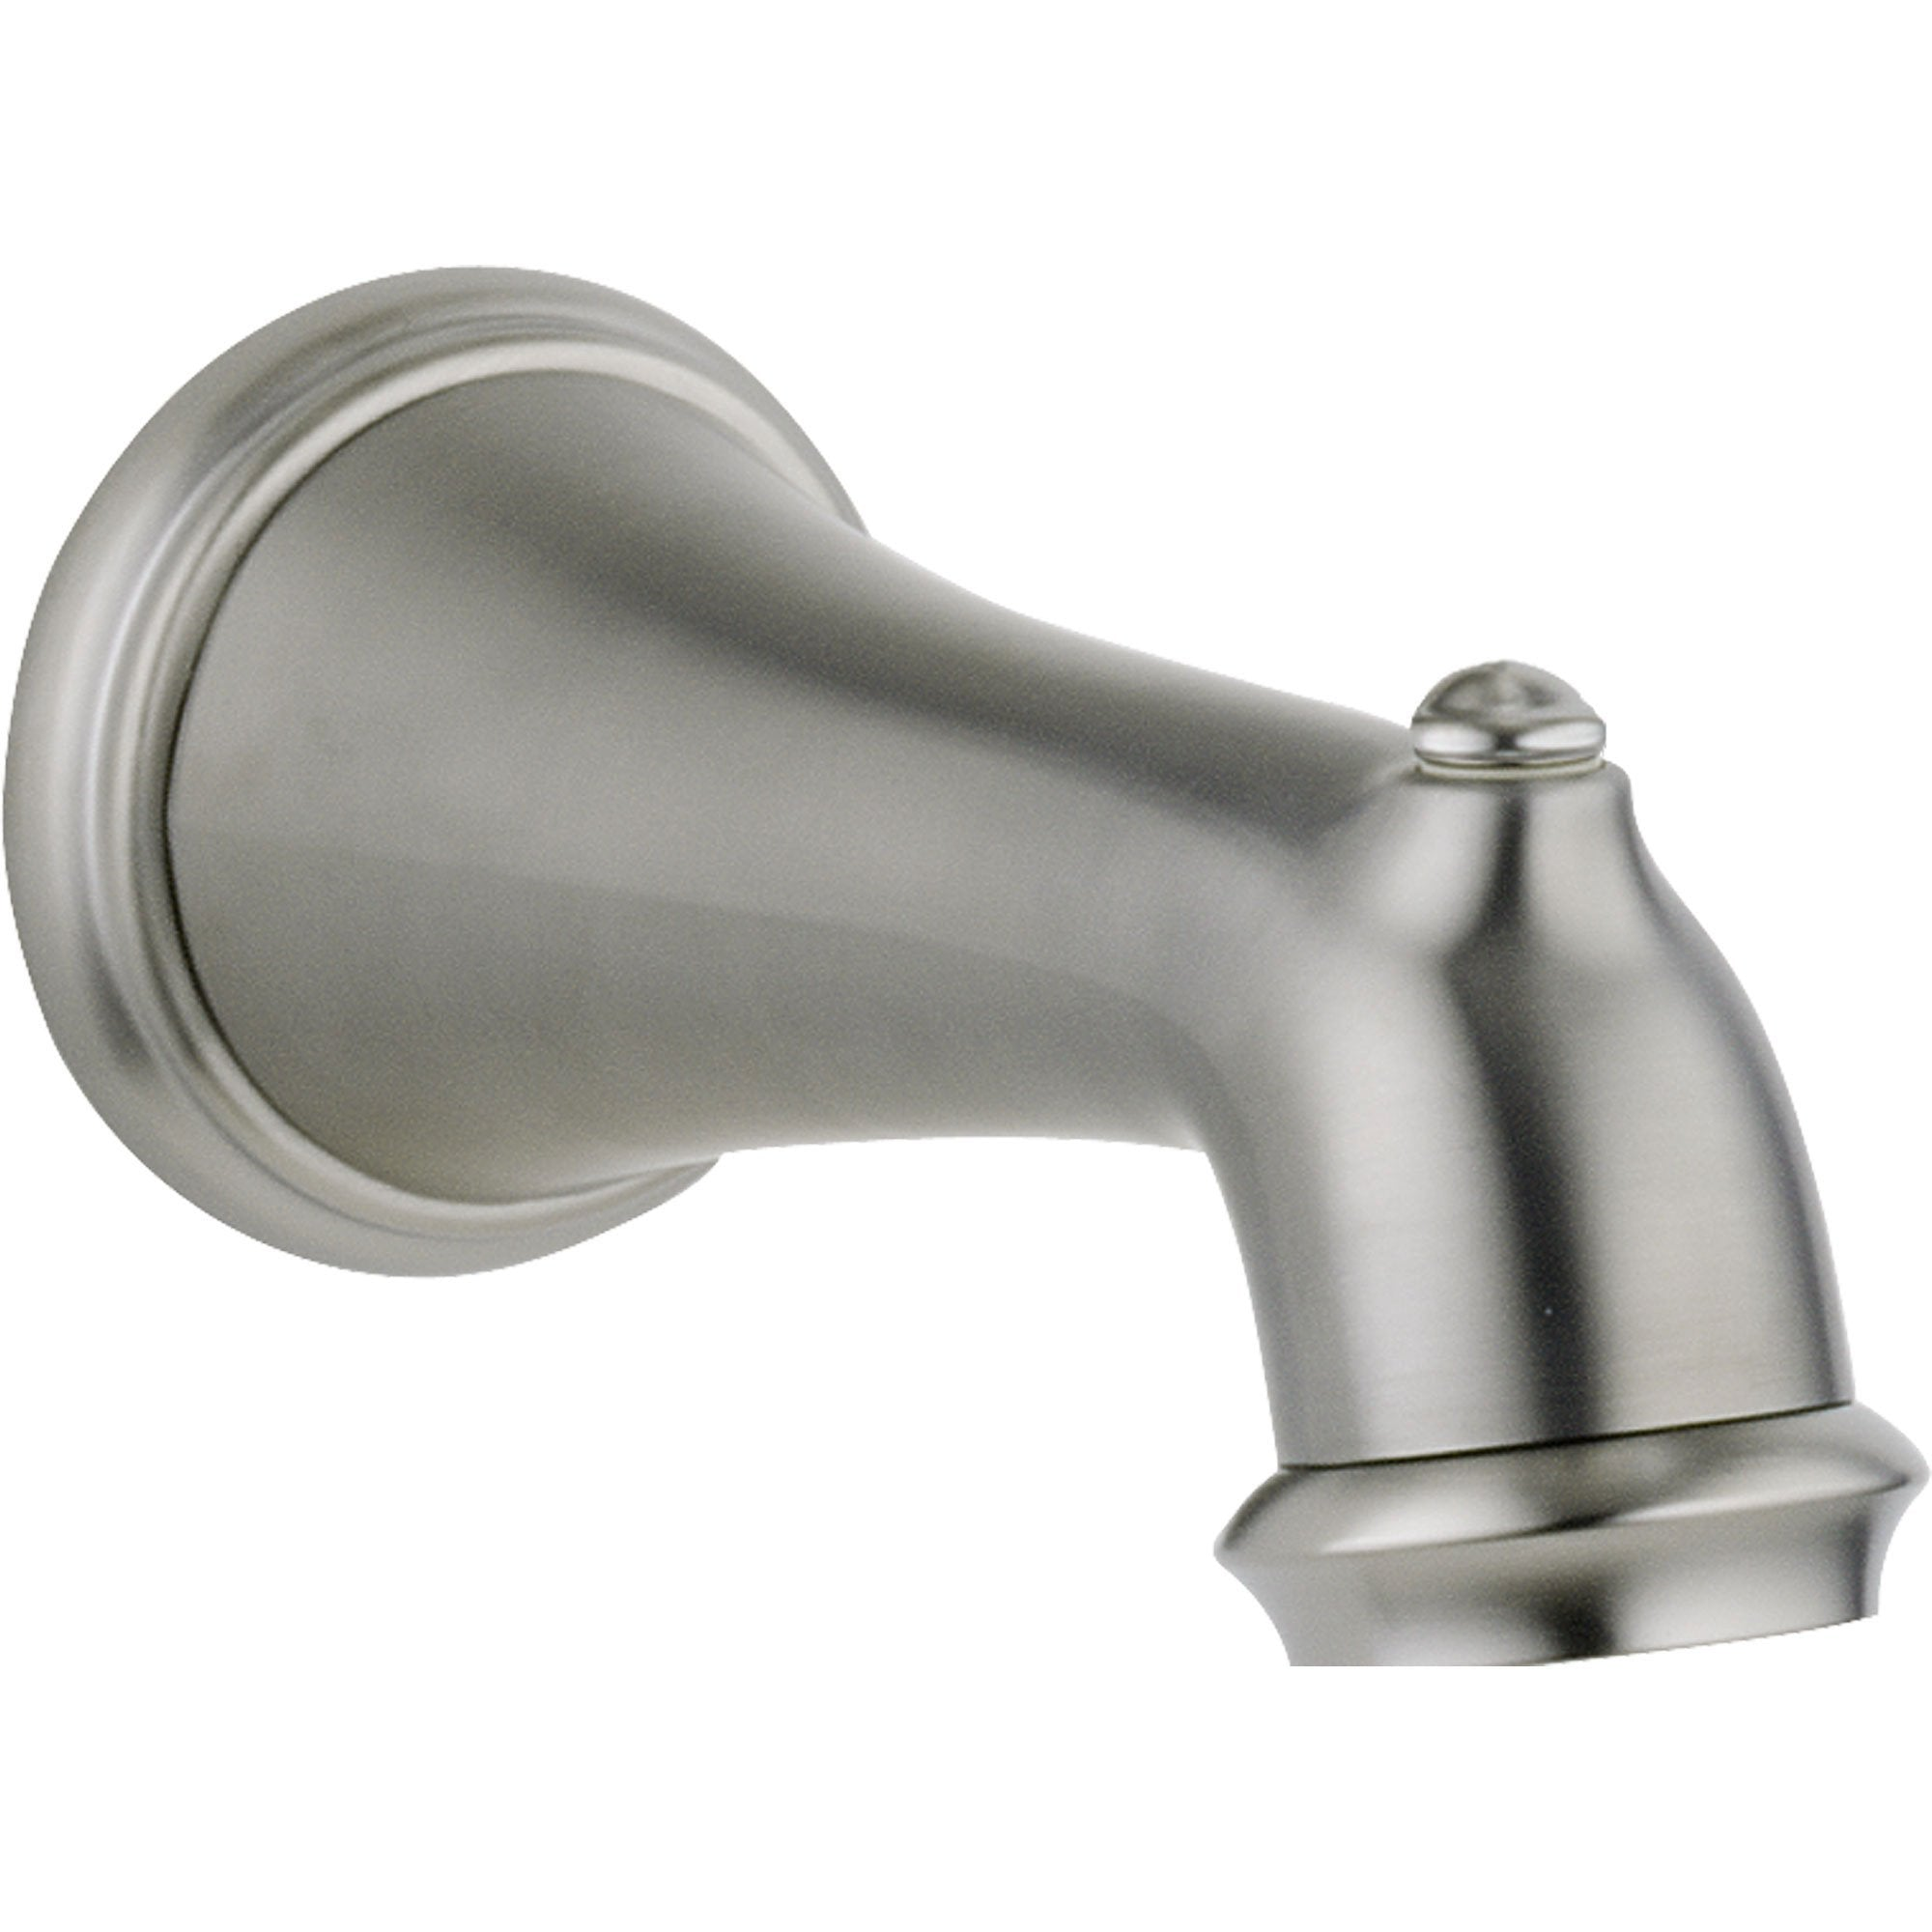 Delta Victorian Non-diverter Tub Spout in Stainless 467079